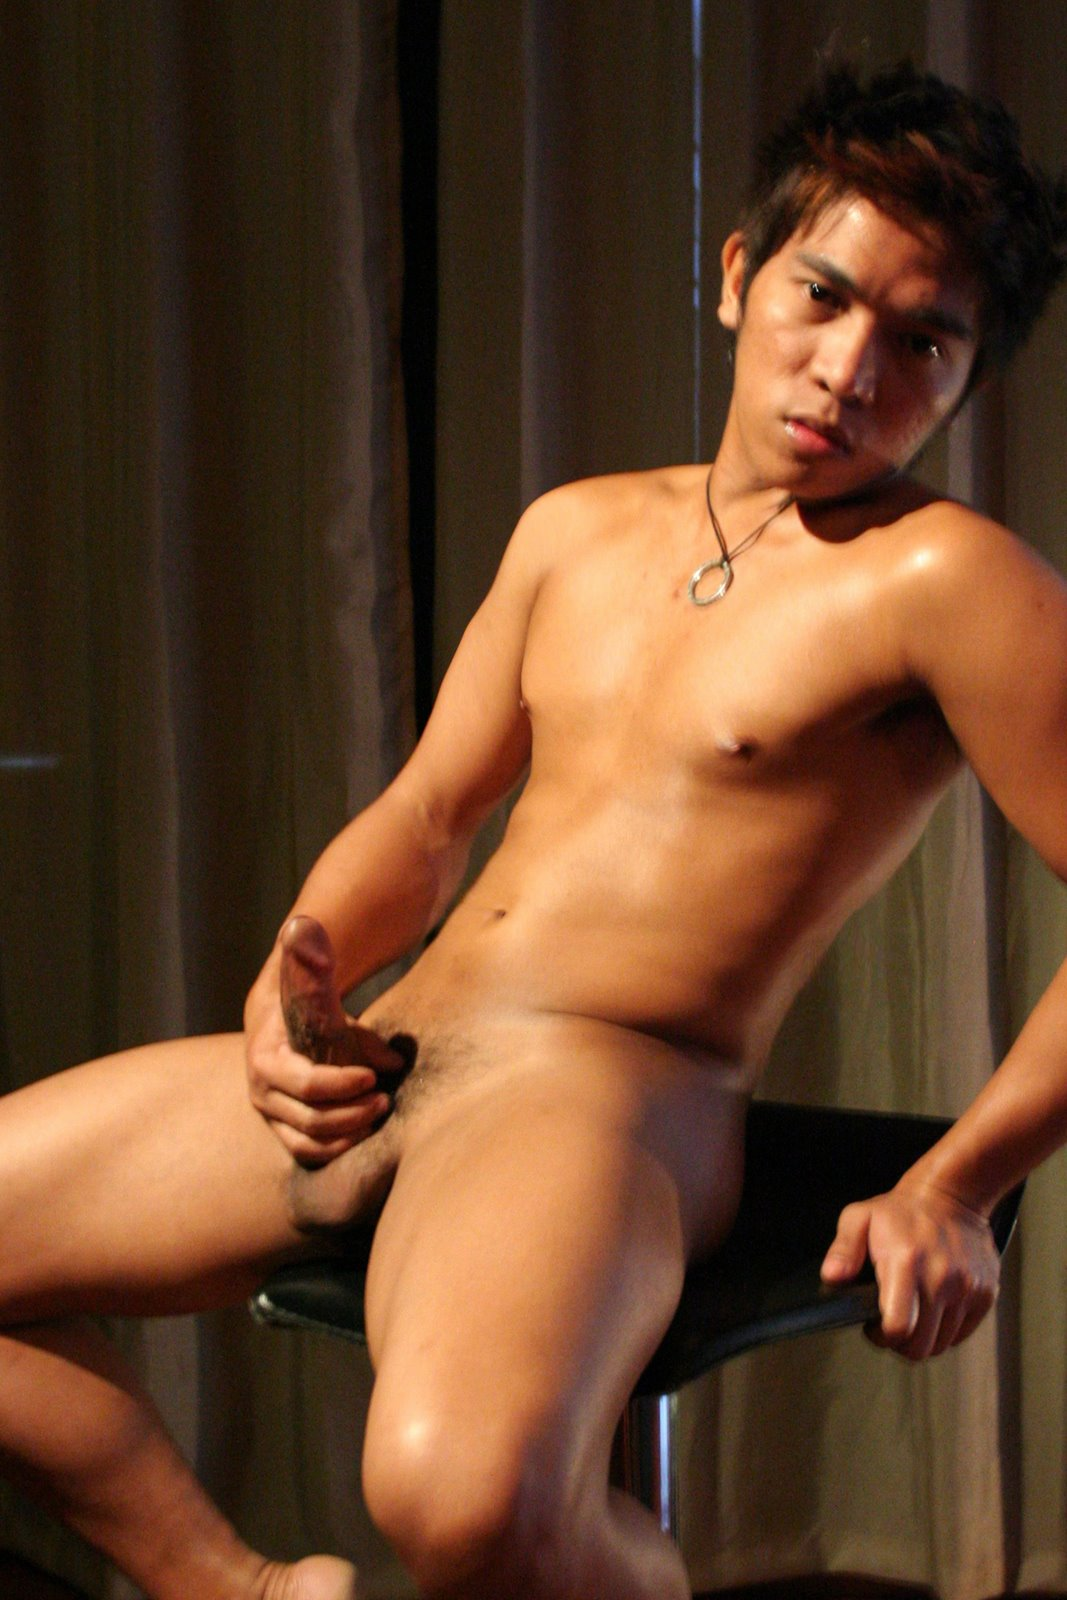 Pinoy handsome celebrity cock gay sky gets 9